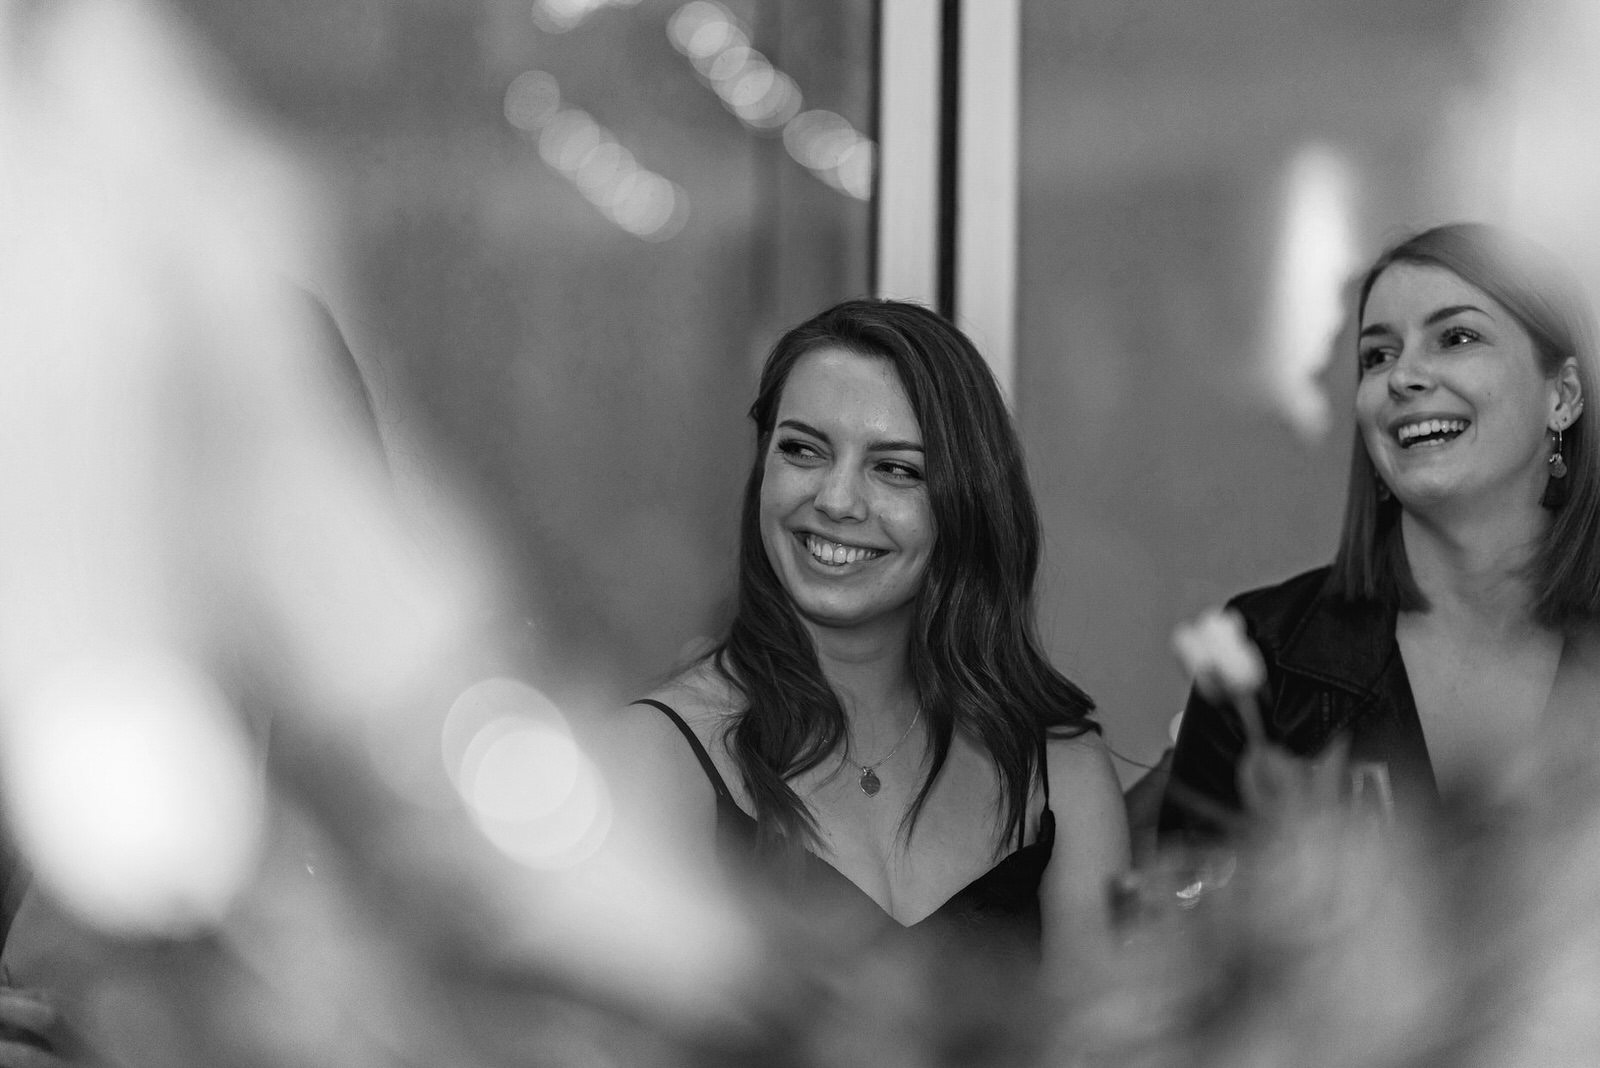 newfound-at-glendowie-auckland-wedding-photographers-172